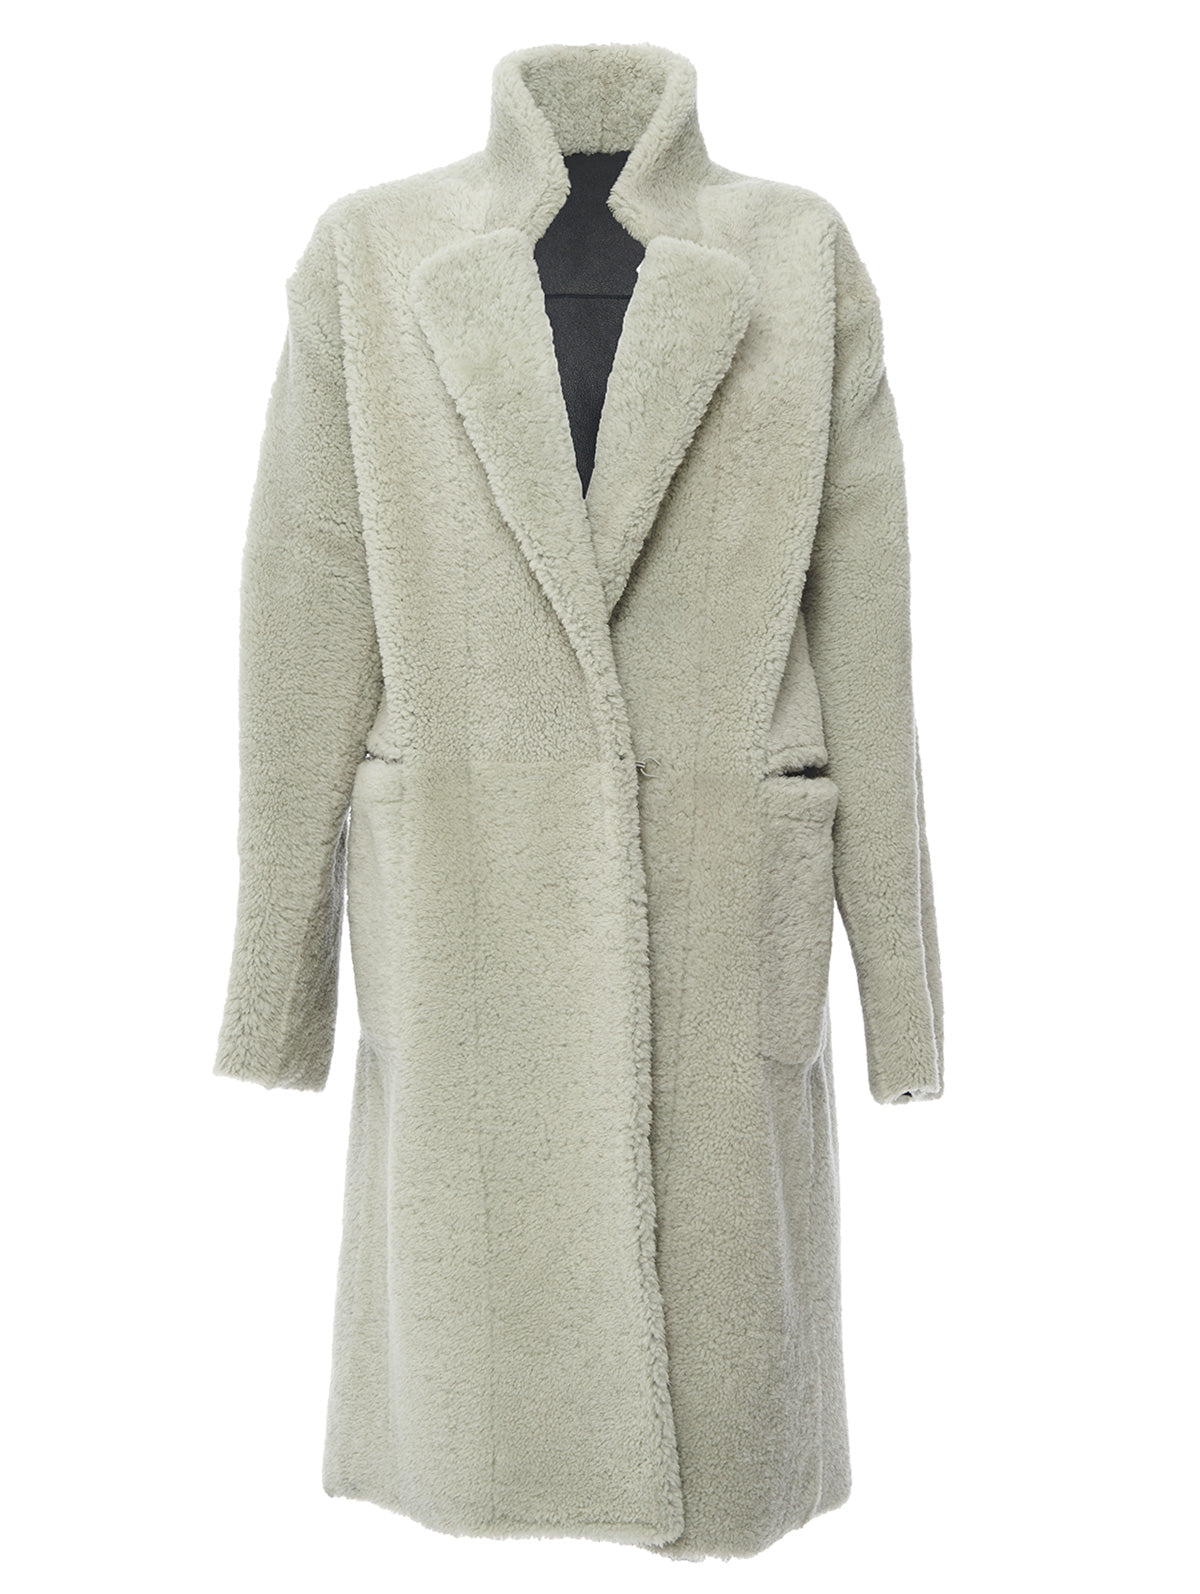 LAPEL SHEARLING COAT, GLASS<br> PRE-ORDER